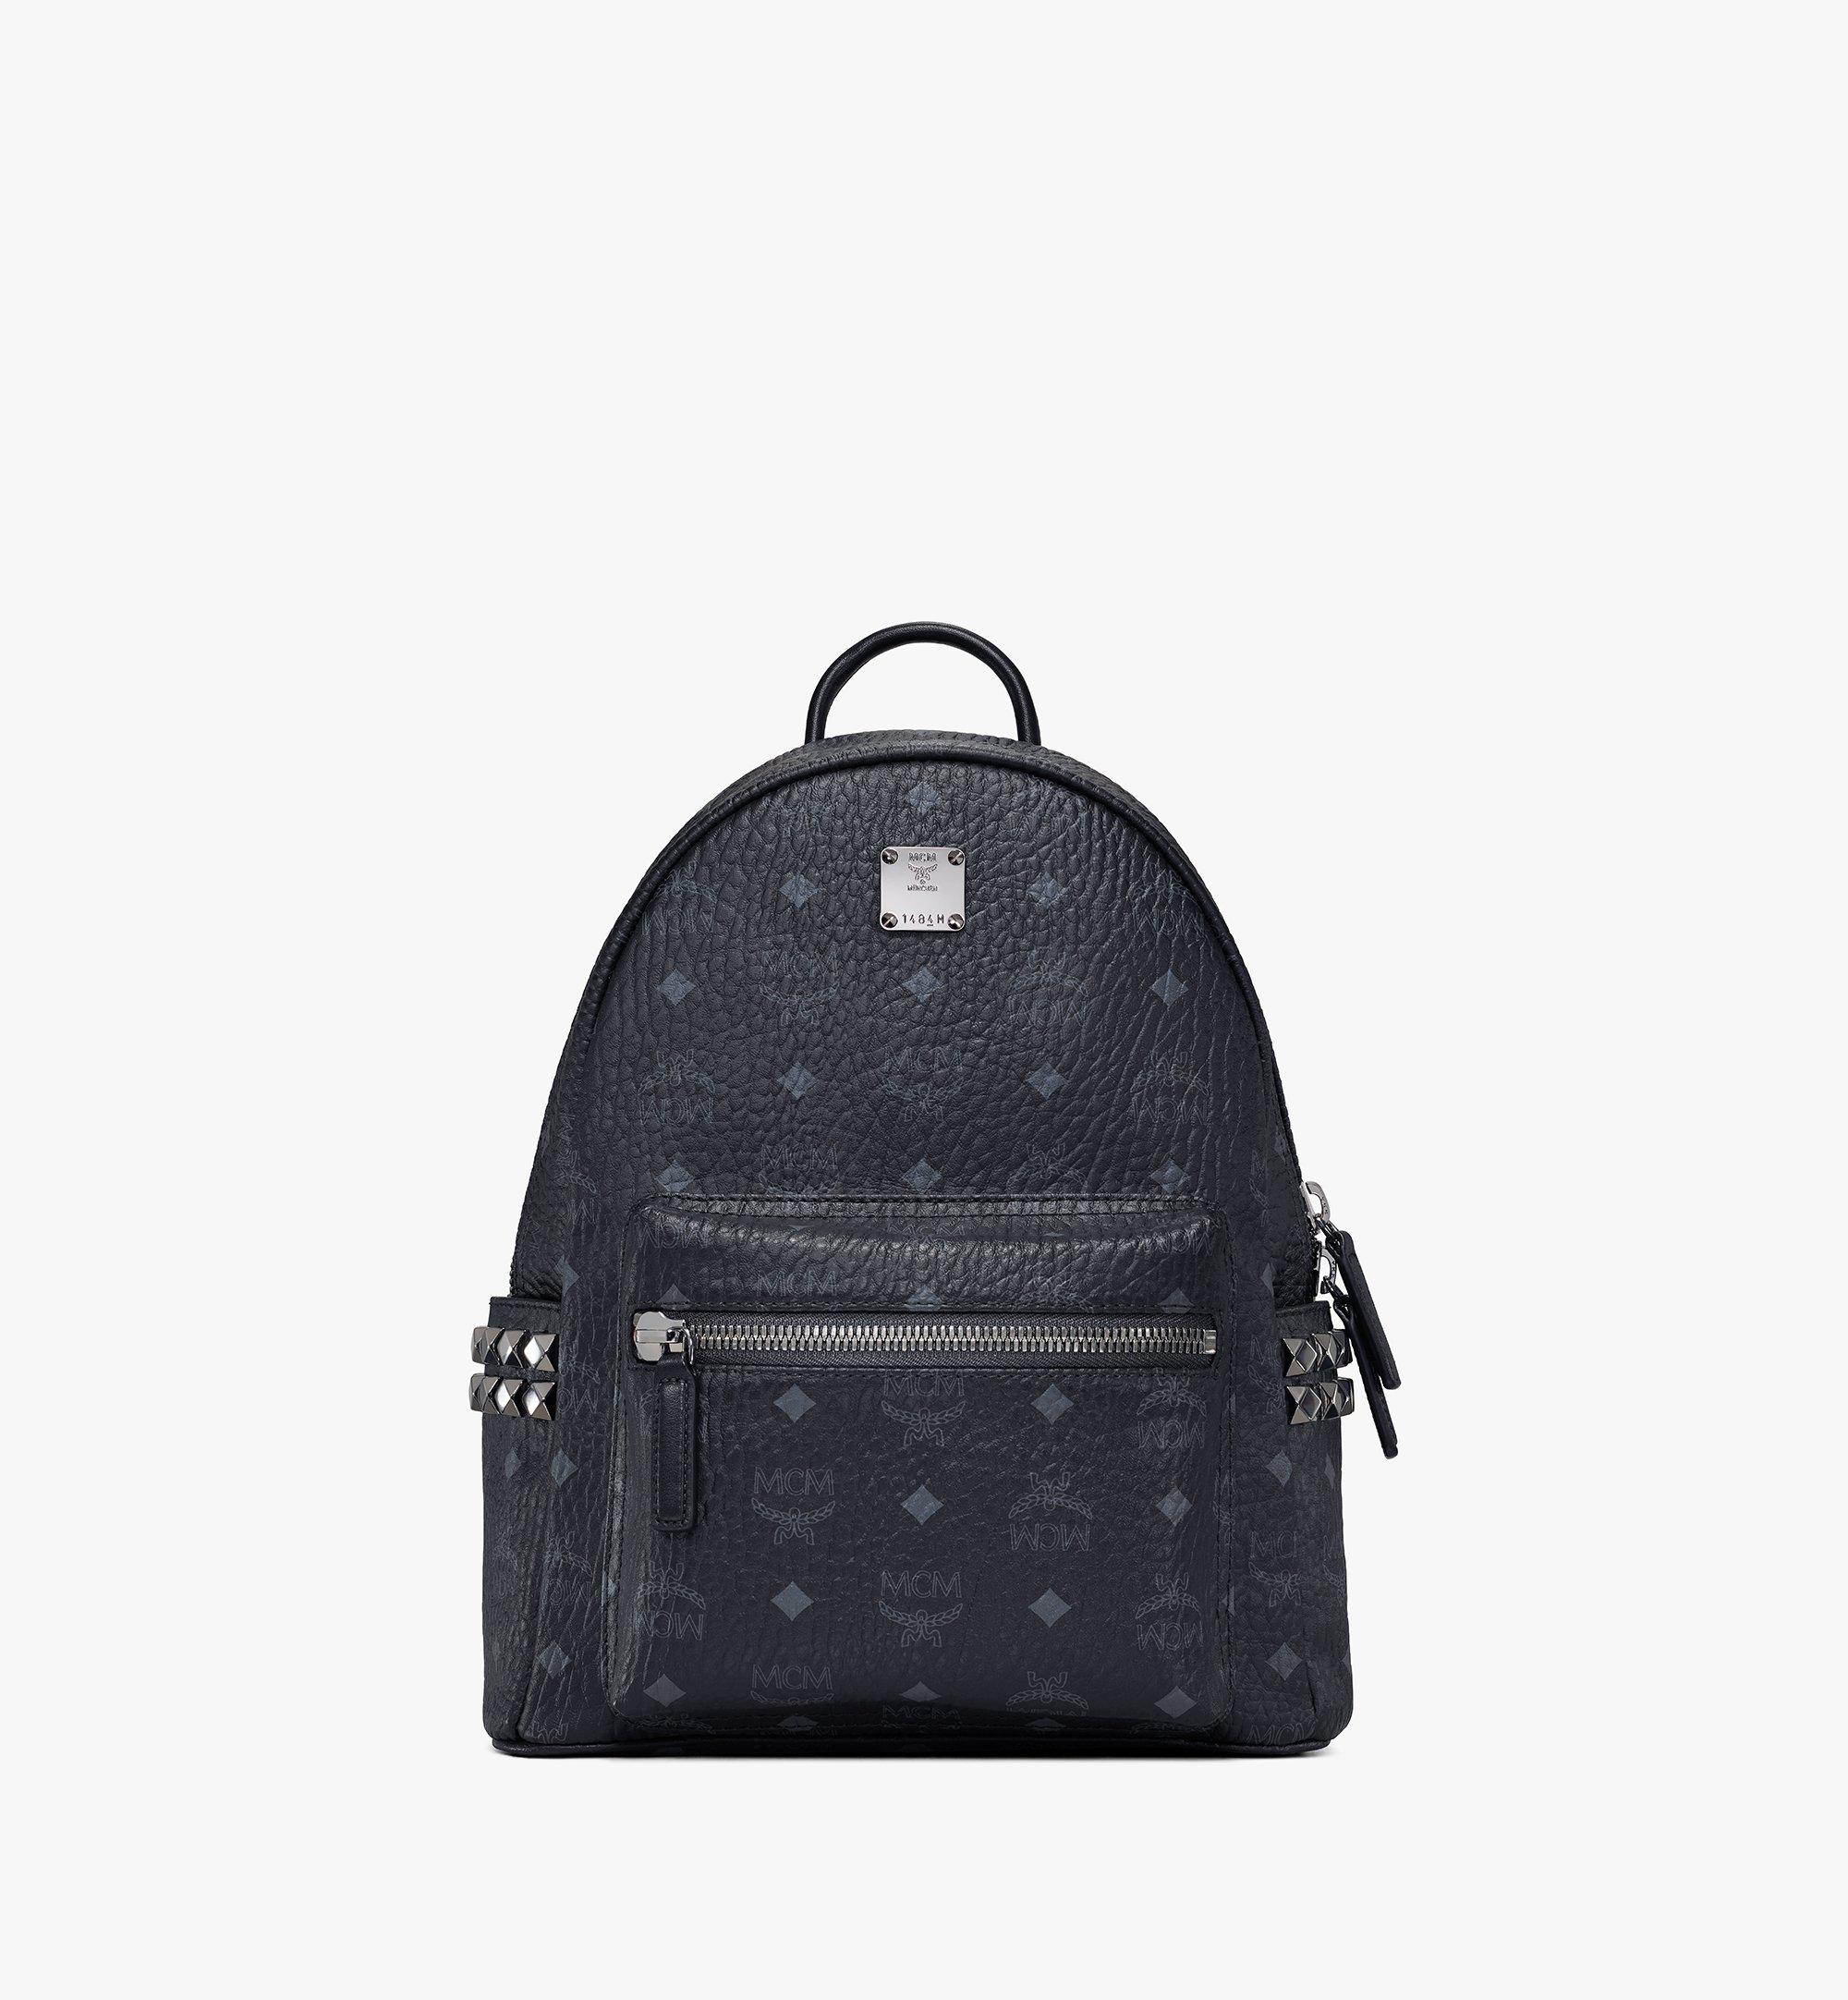 32 cm 12.5 in Stark Side Studs Rucksack in Visetos Black